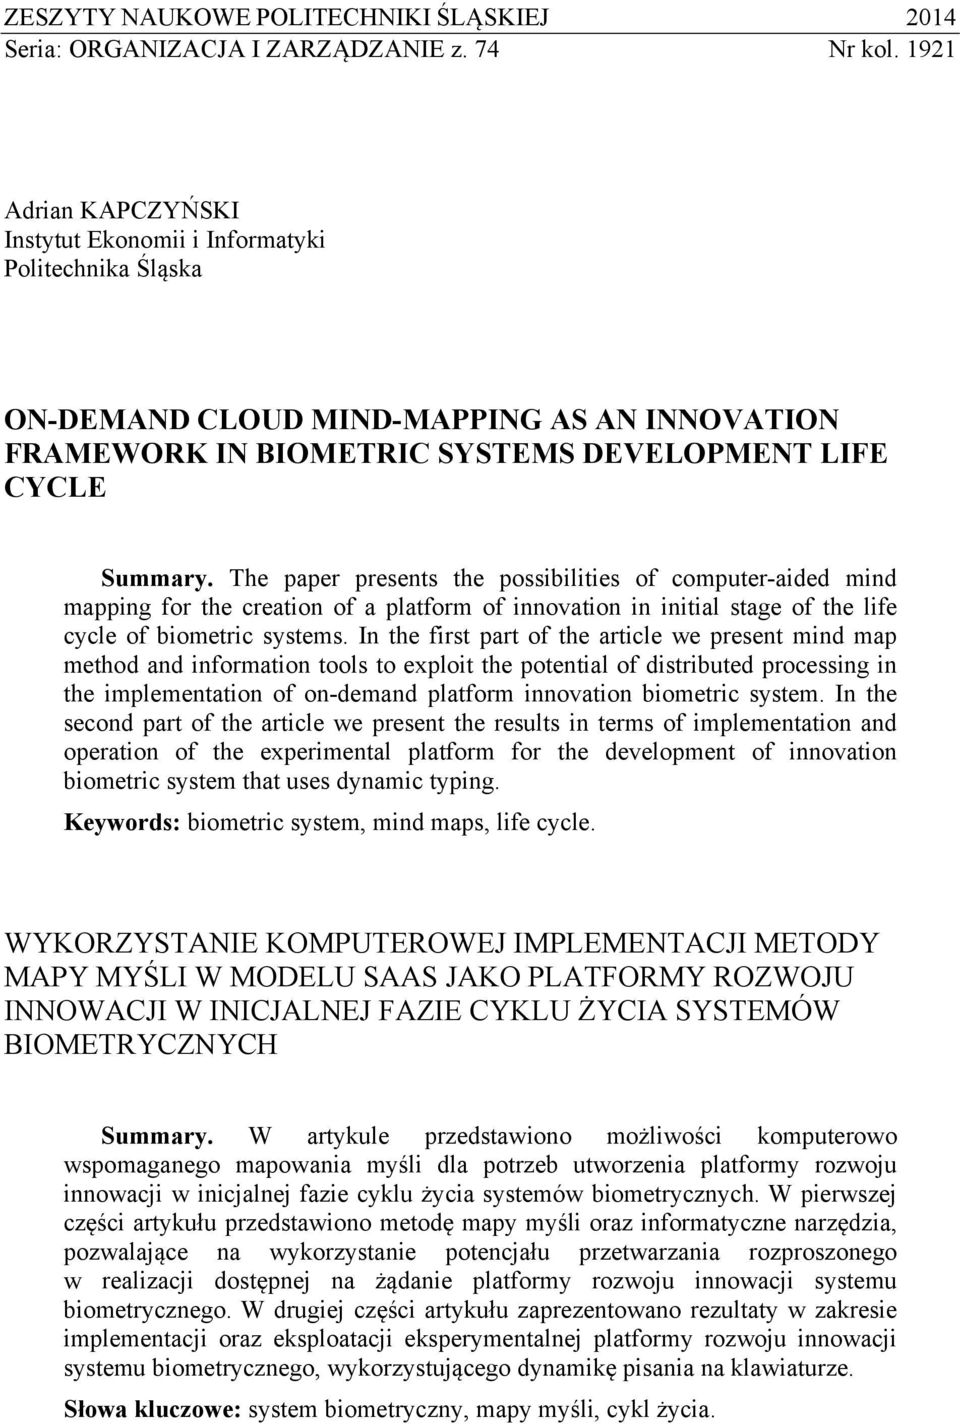 The paper presents the possibilities of computer-aided mind mapping for the creation of a platform of innovation in initial stage of the life cycle of biometric systems.